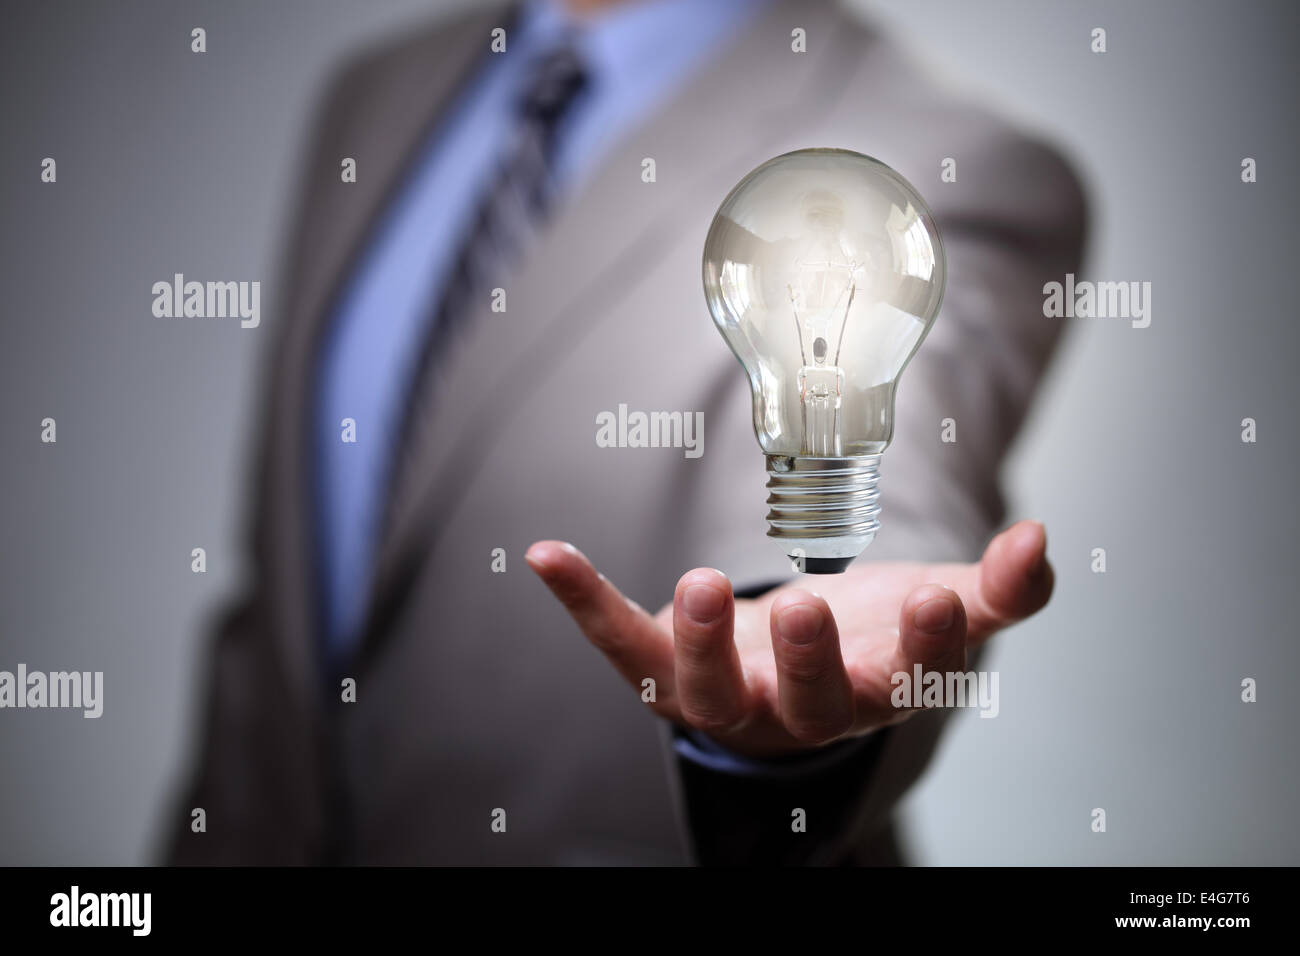 Idea di business Immagini Stock